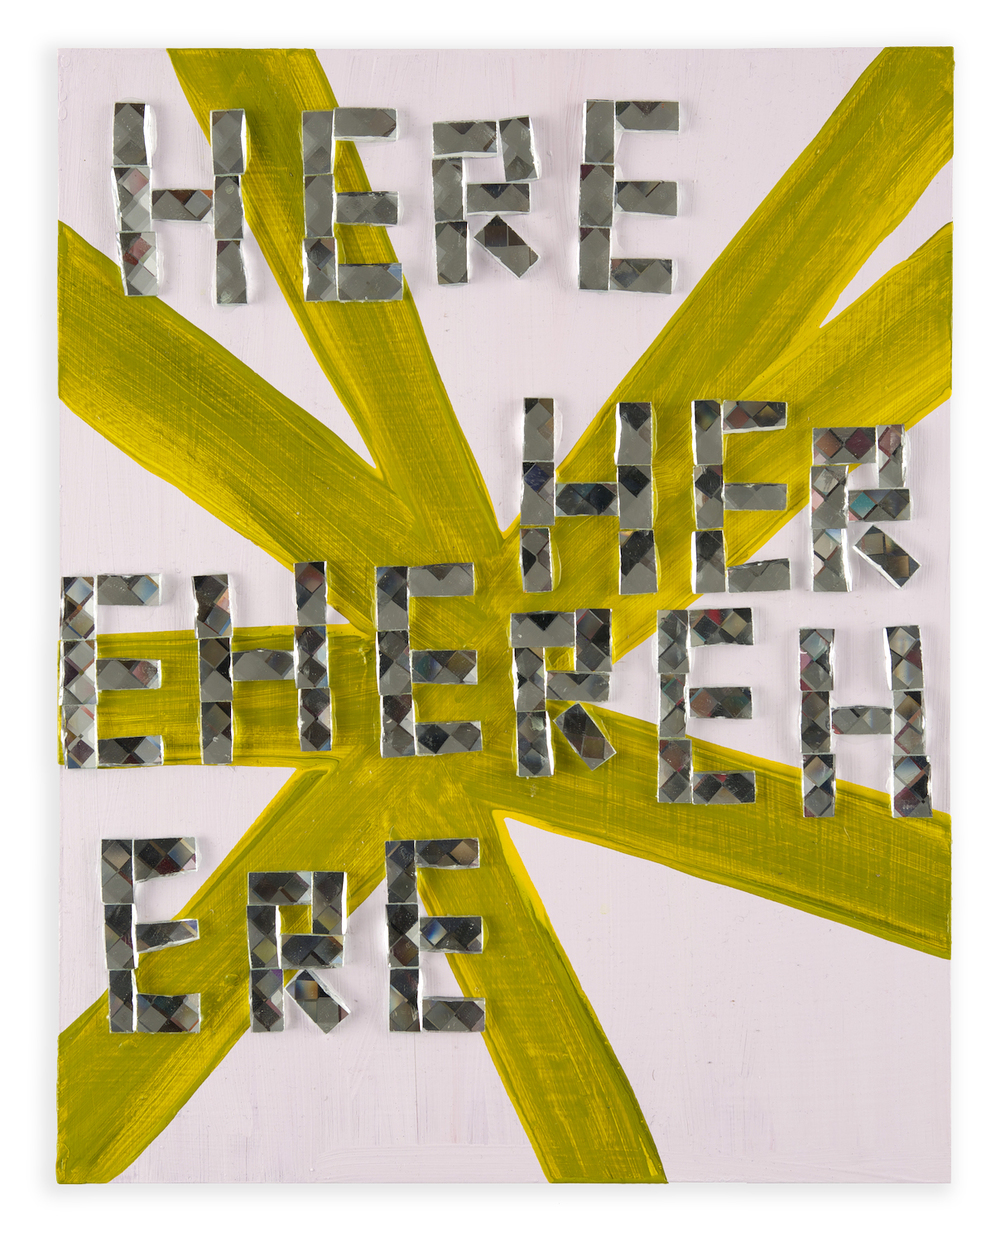 Here , 2014, acrylic and glass tile on wood, 14 x 11 in